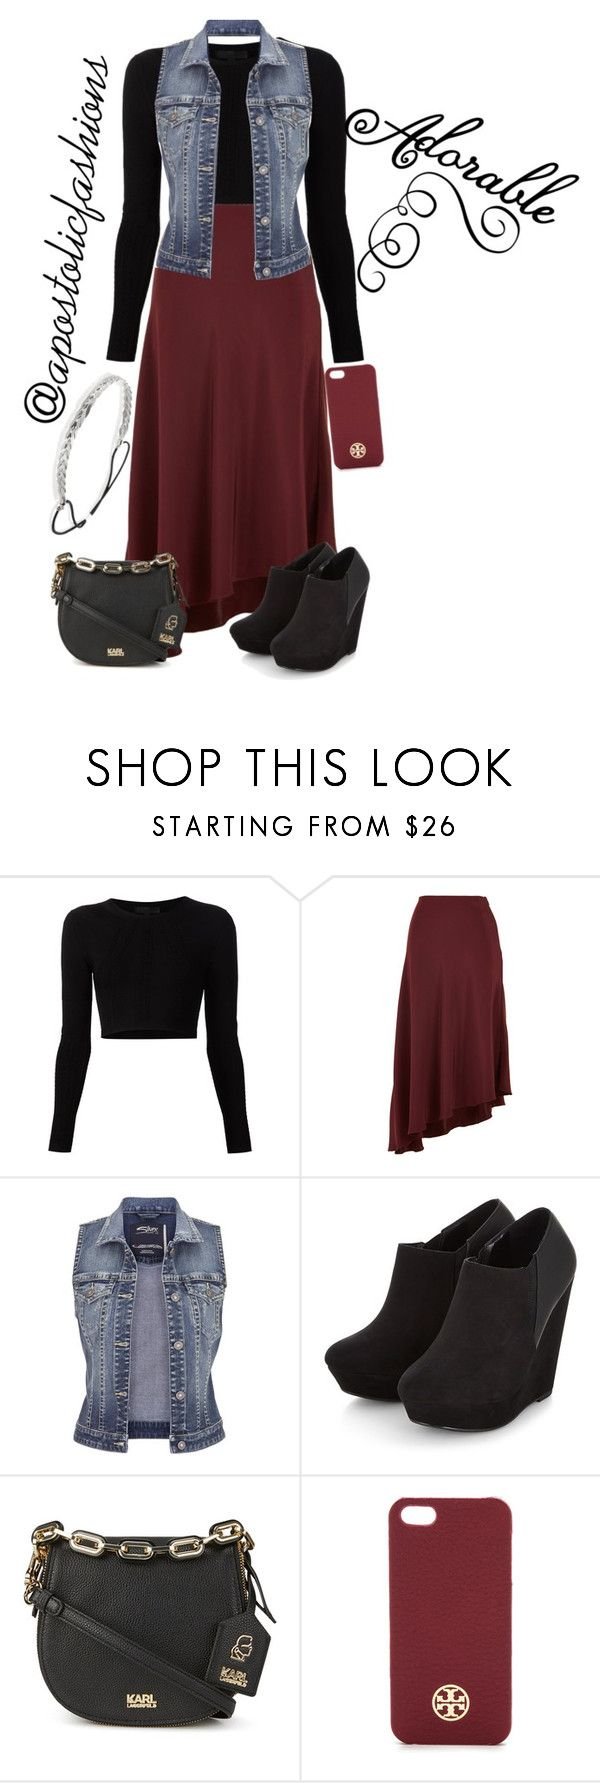 """""""Apostolic Fashions #1473"""" by apostolicfashions on Polyvore featuring Cushnie Et Ochs, TIBI, maurices, Tory Burch, Express, modestlykay and modestlywhit"""